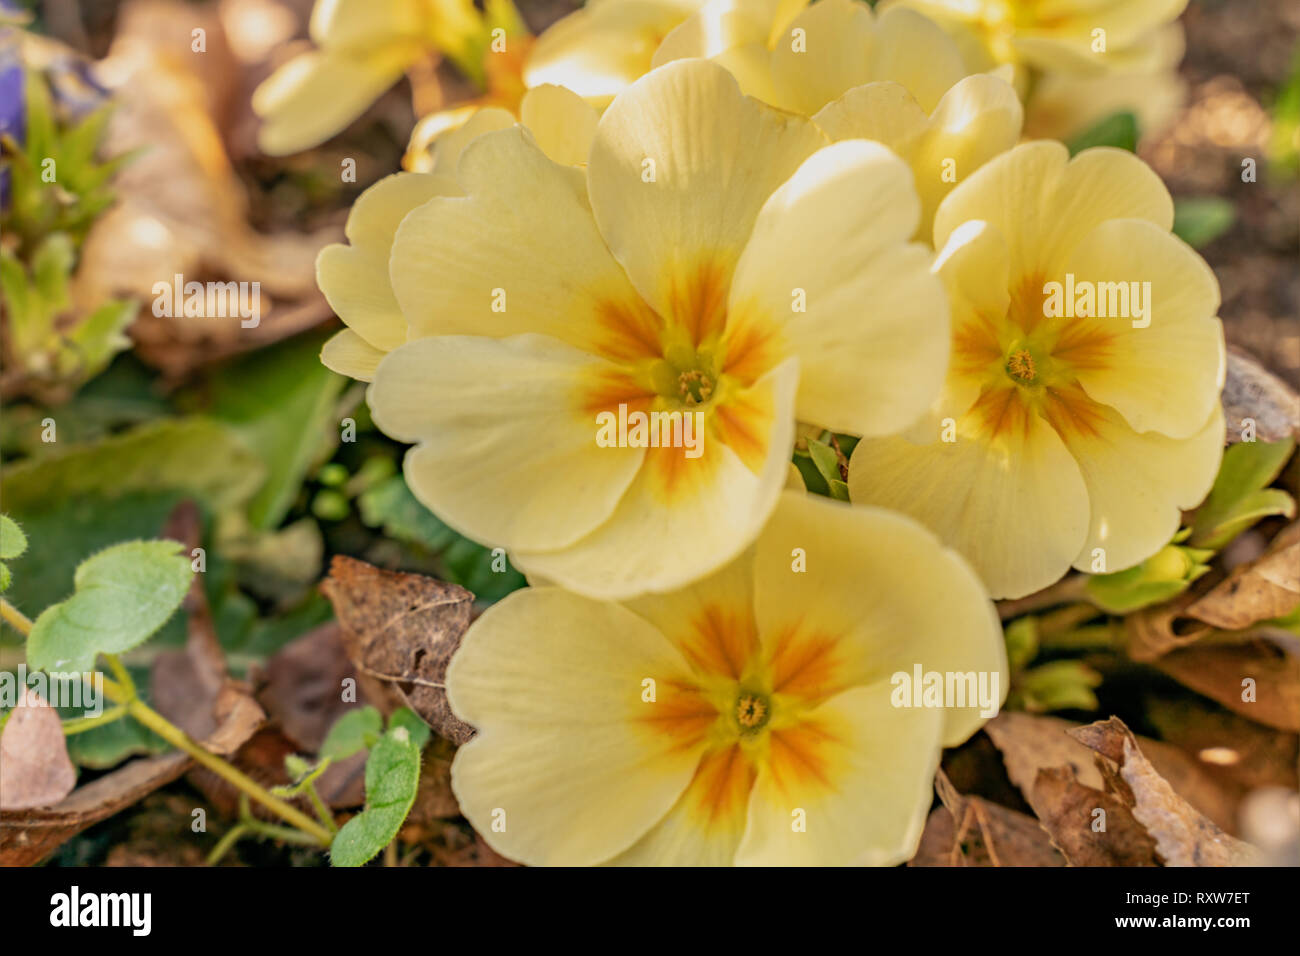 Flowers of Pansy in a garden bed in full bloom. Yellow pansies represent happiness or a bright disposition which is ideal for spring - Stock Image